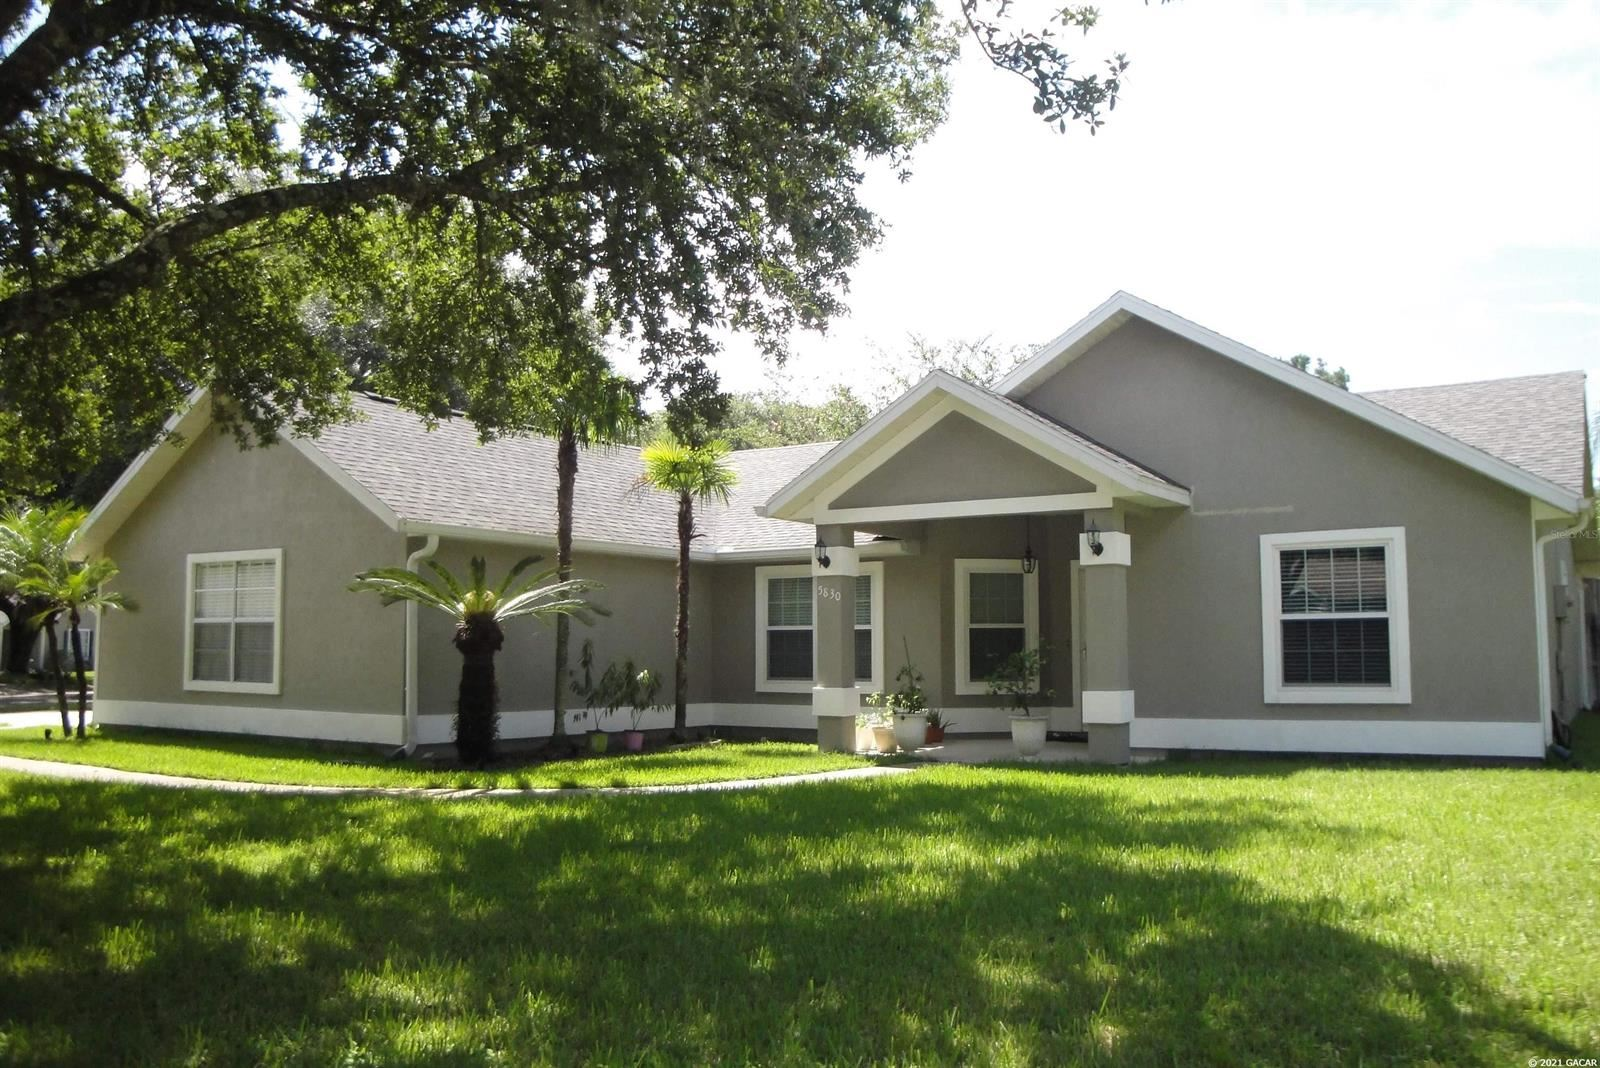 5830 NW 38TH TERRACE, Gainesville, FL 32653 - #: GC447300